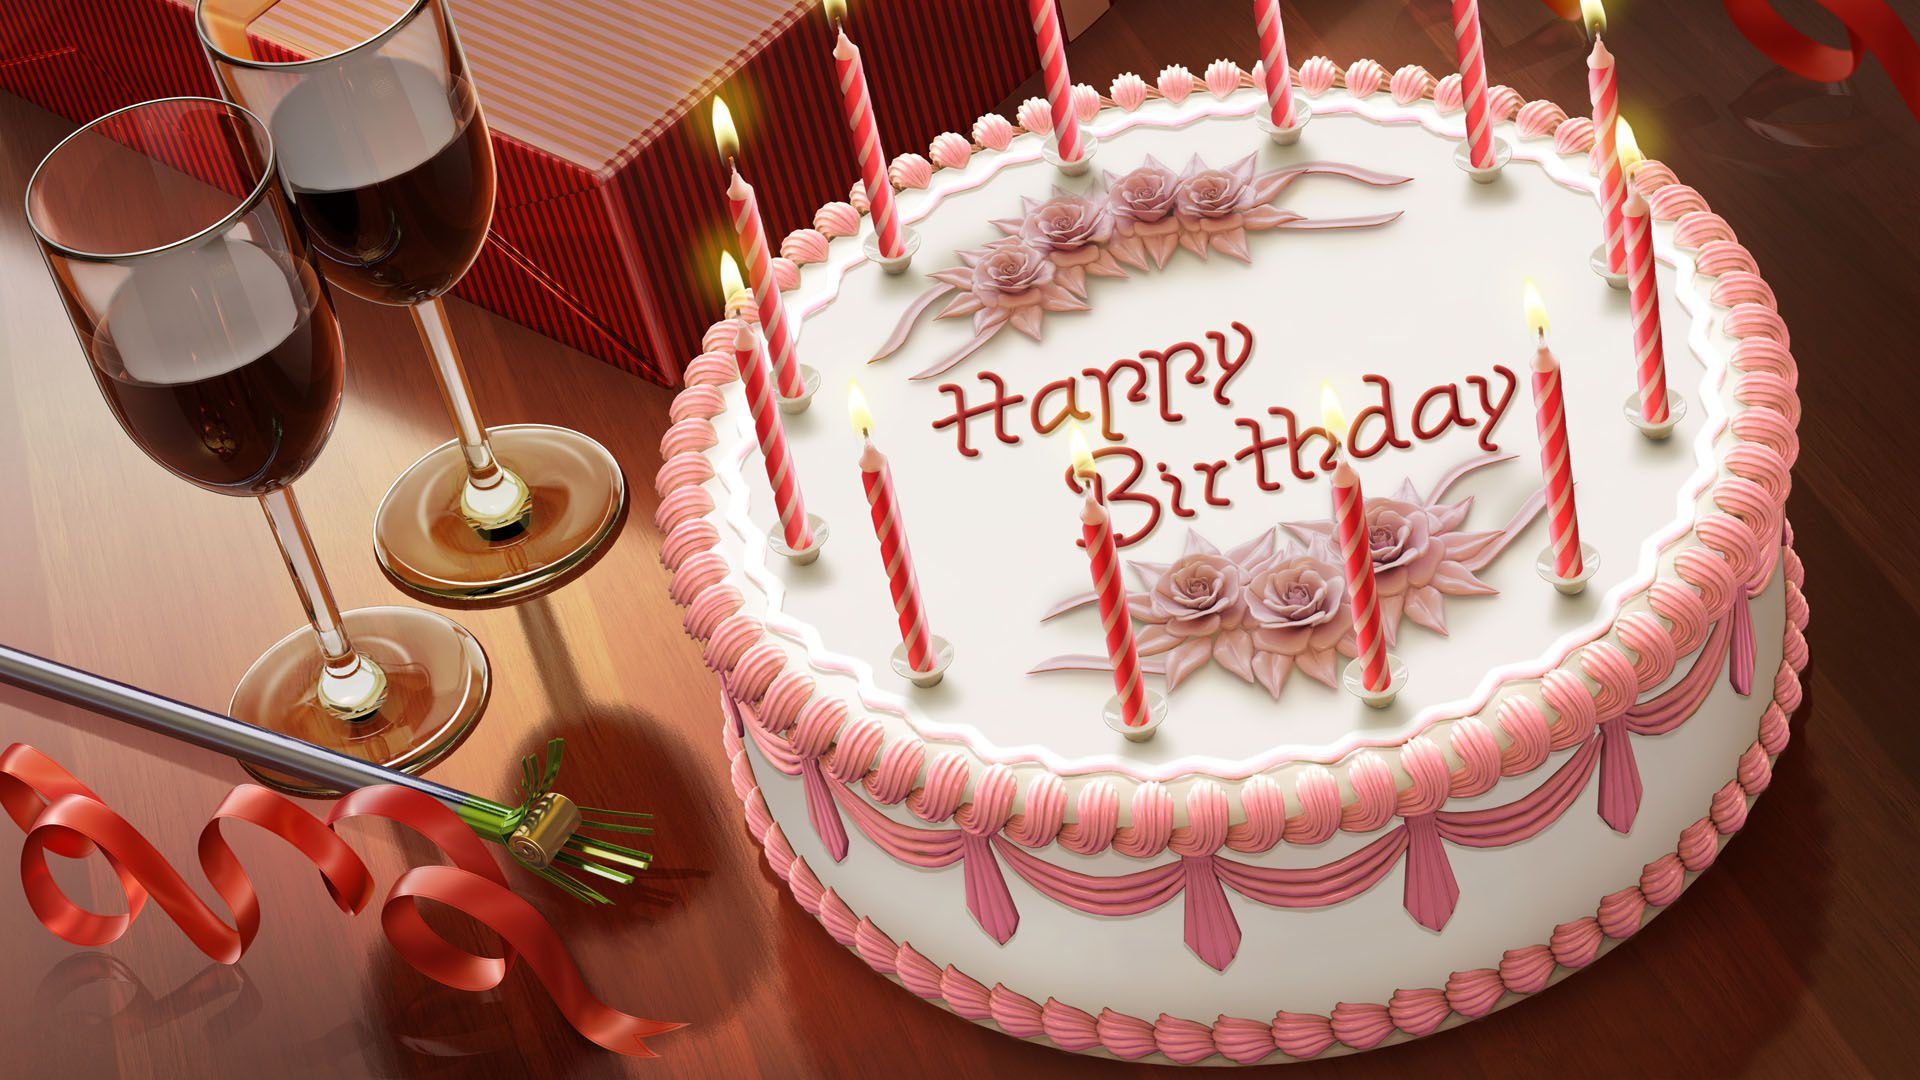 Happy Birthday Wallpapers Hd Free Download Hd New Wallpapers Free Birthday Wishes Cake Happy Birthday Cake Images Happy Birthday Cake Pictures